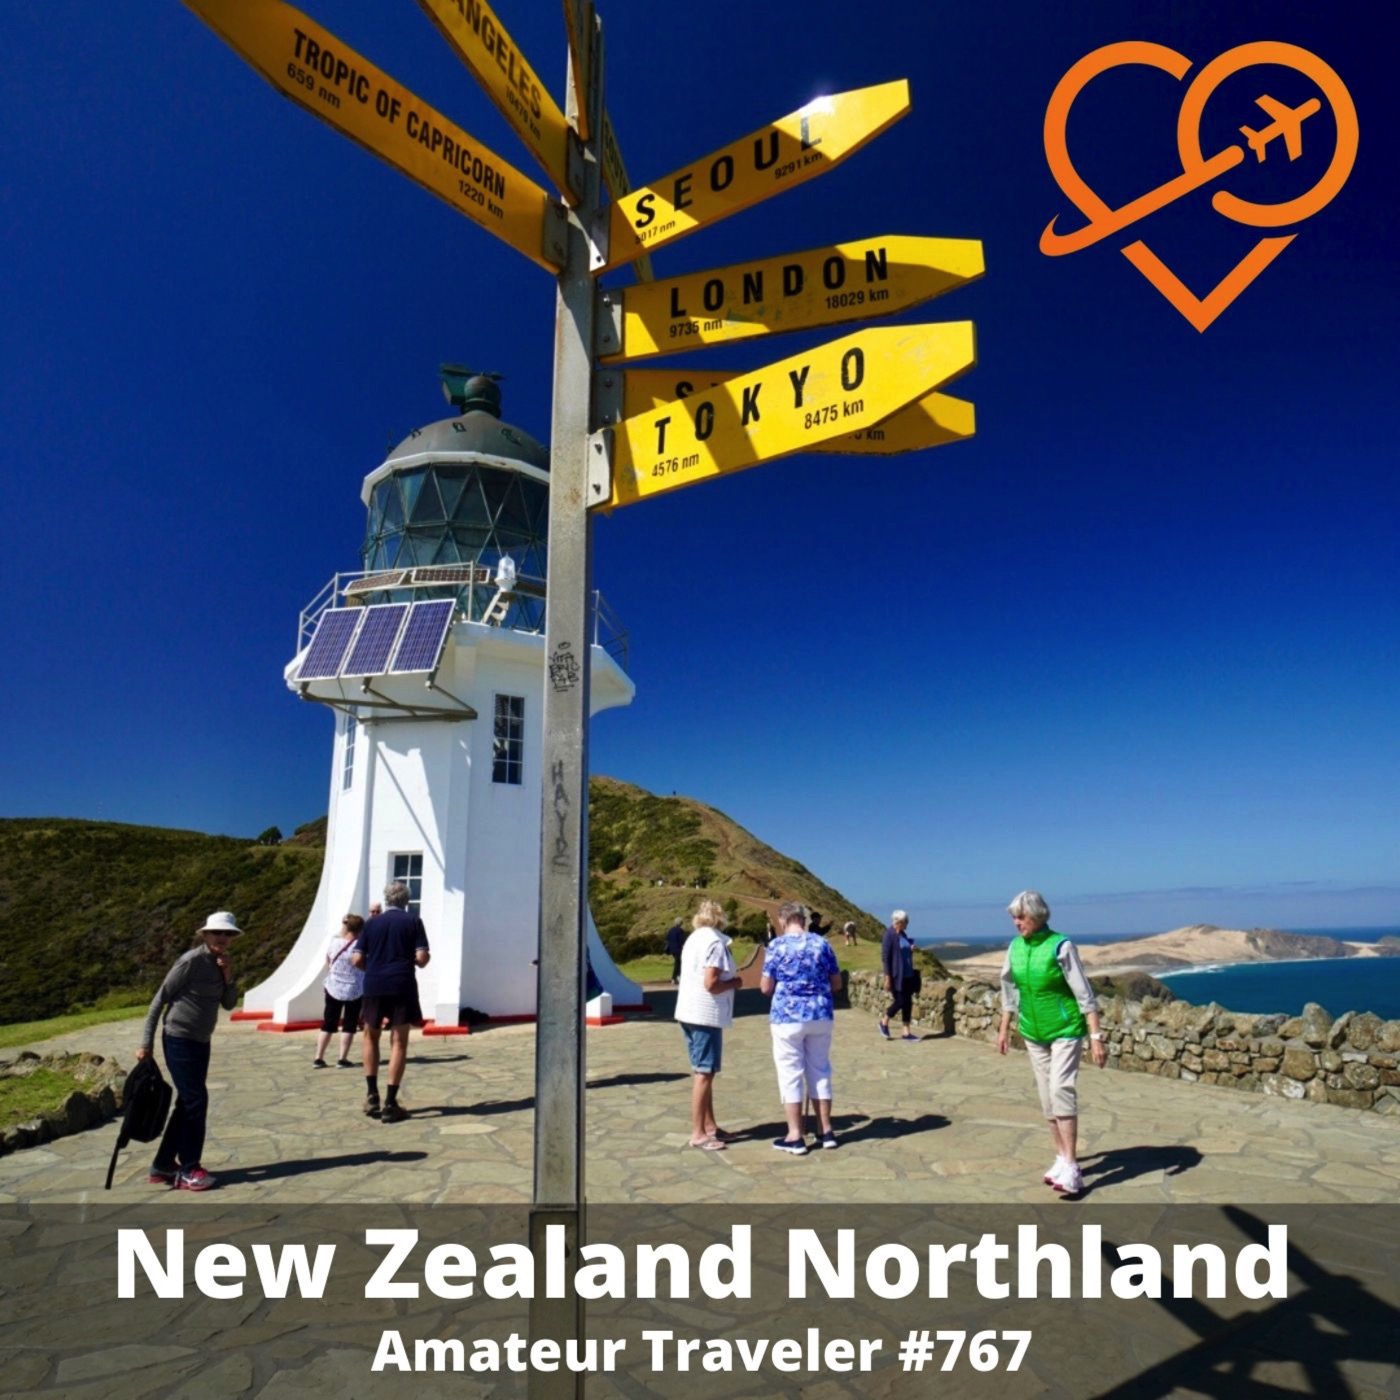 AT#767 - Travel to the New Zealand Northland